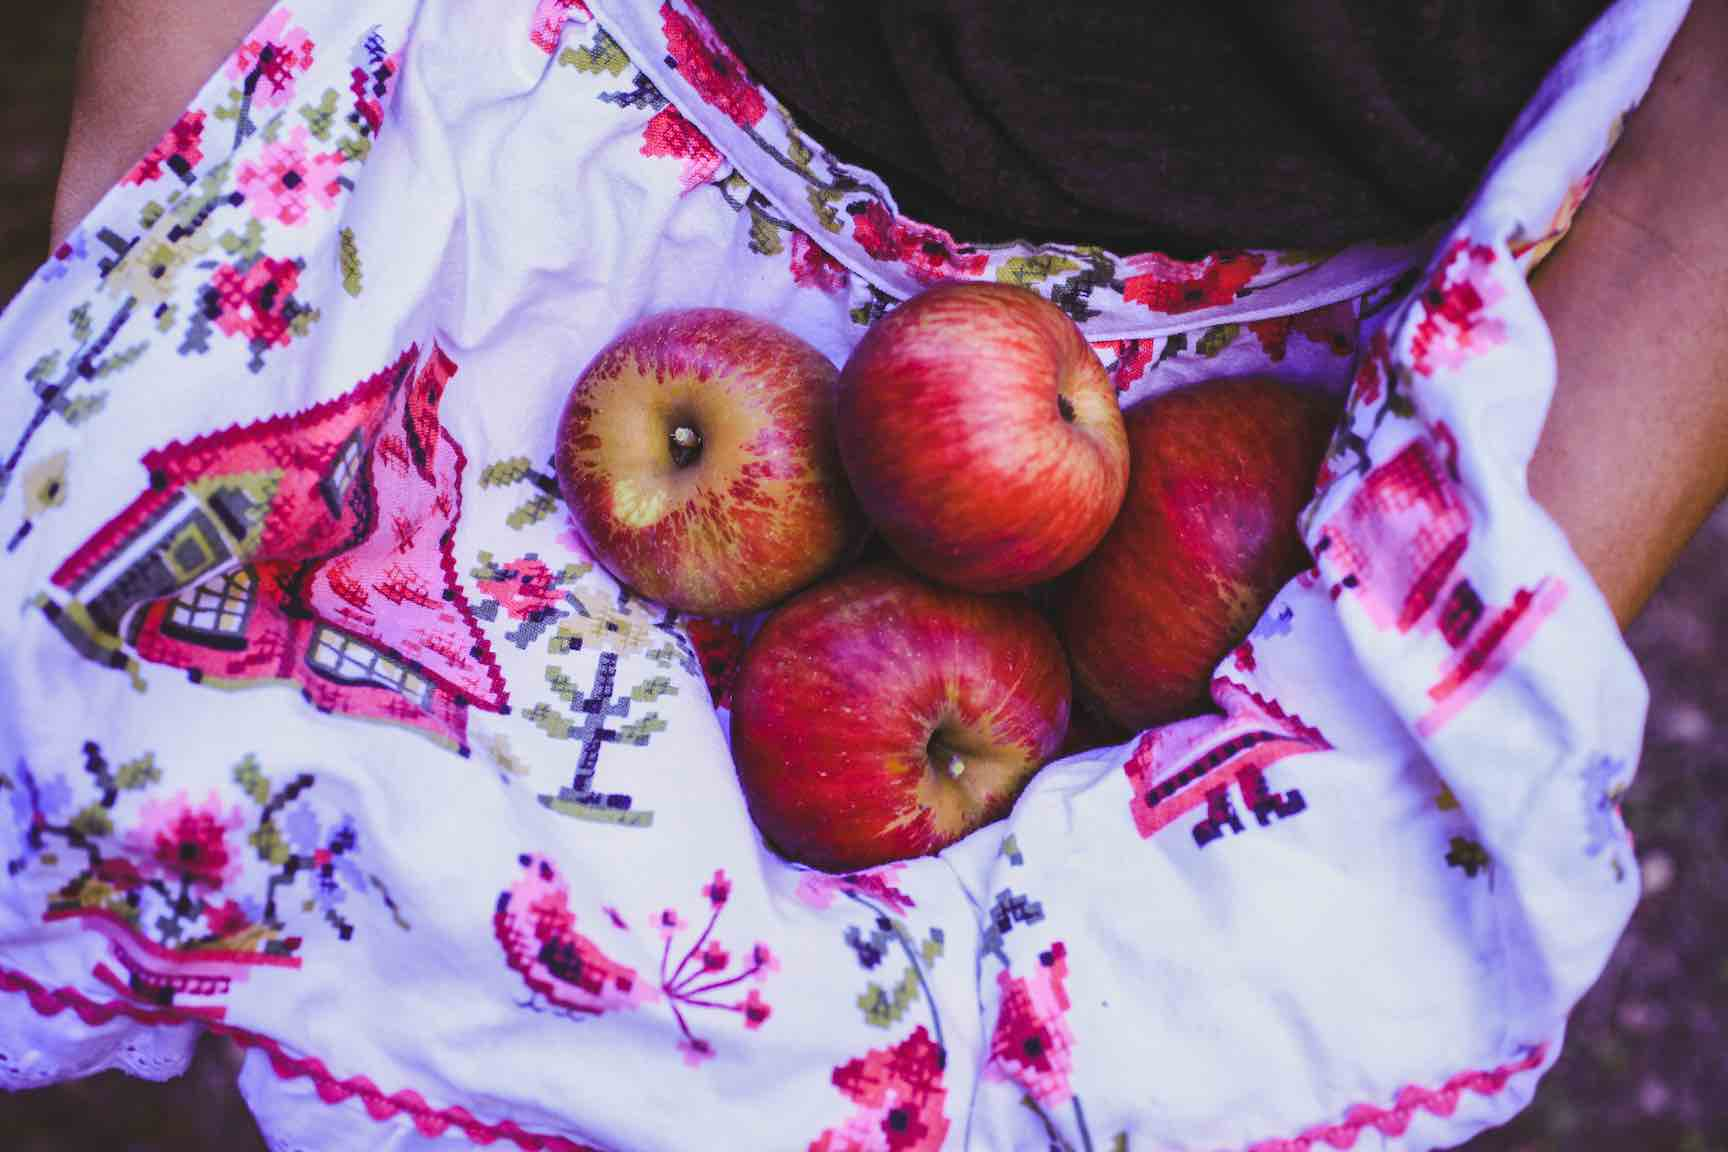 Apples in an apron